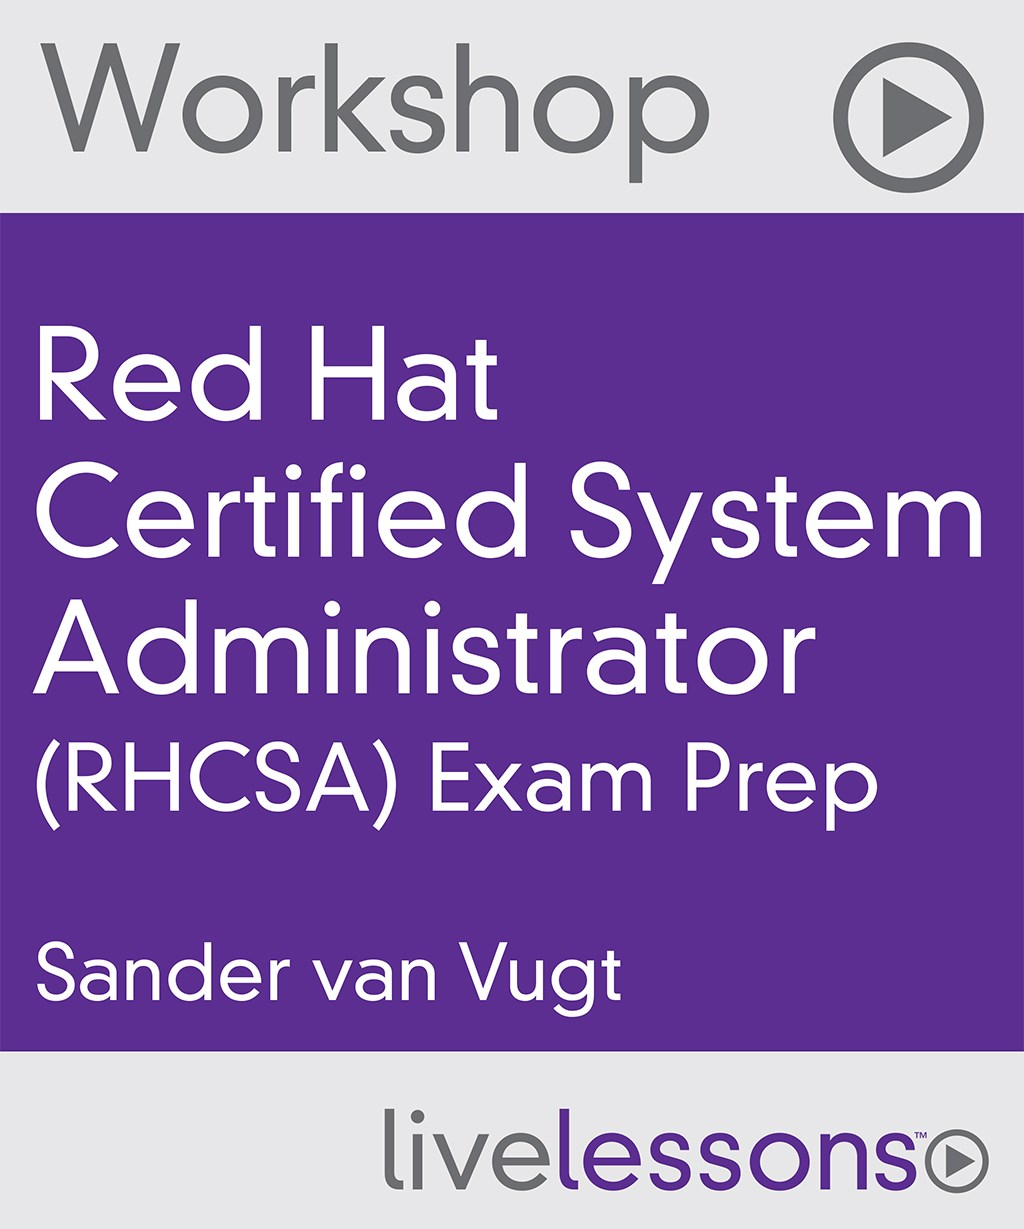 Red Hat Certified System Administrator (RHCSA) Exam Prep Video Workshop